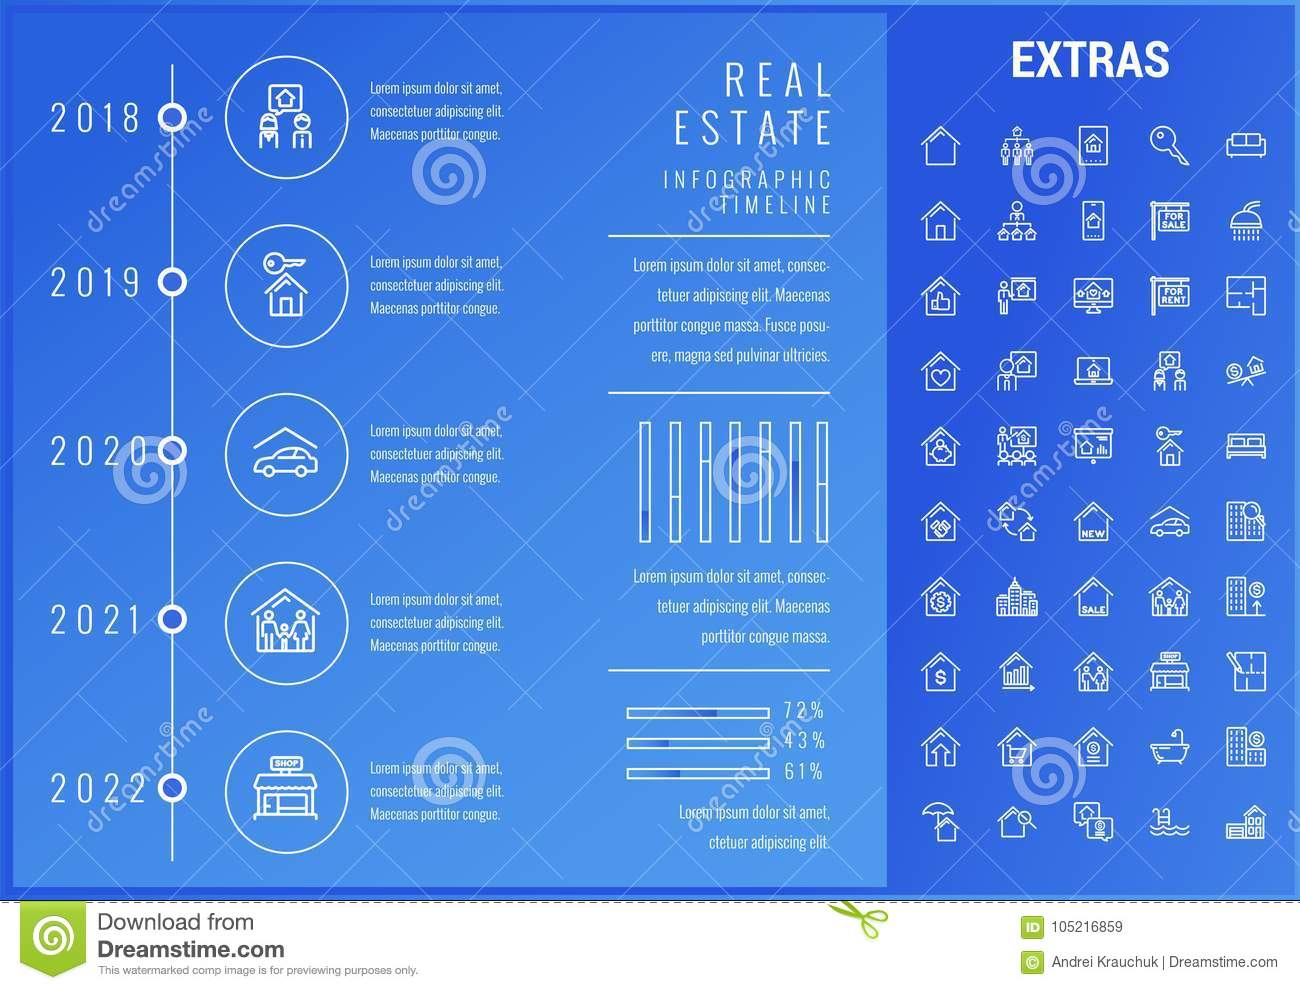 real-estate-infographic-template-element